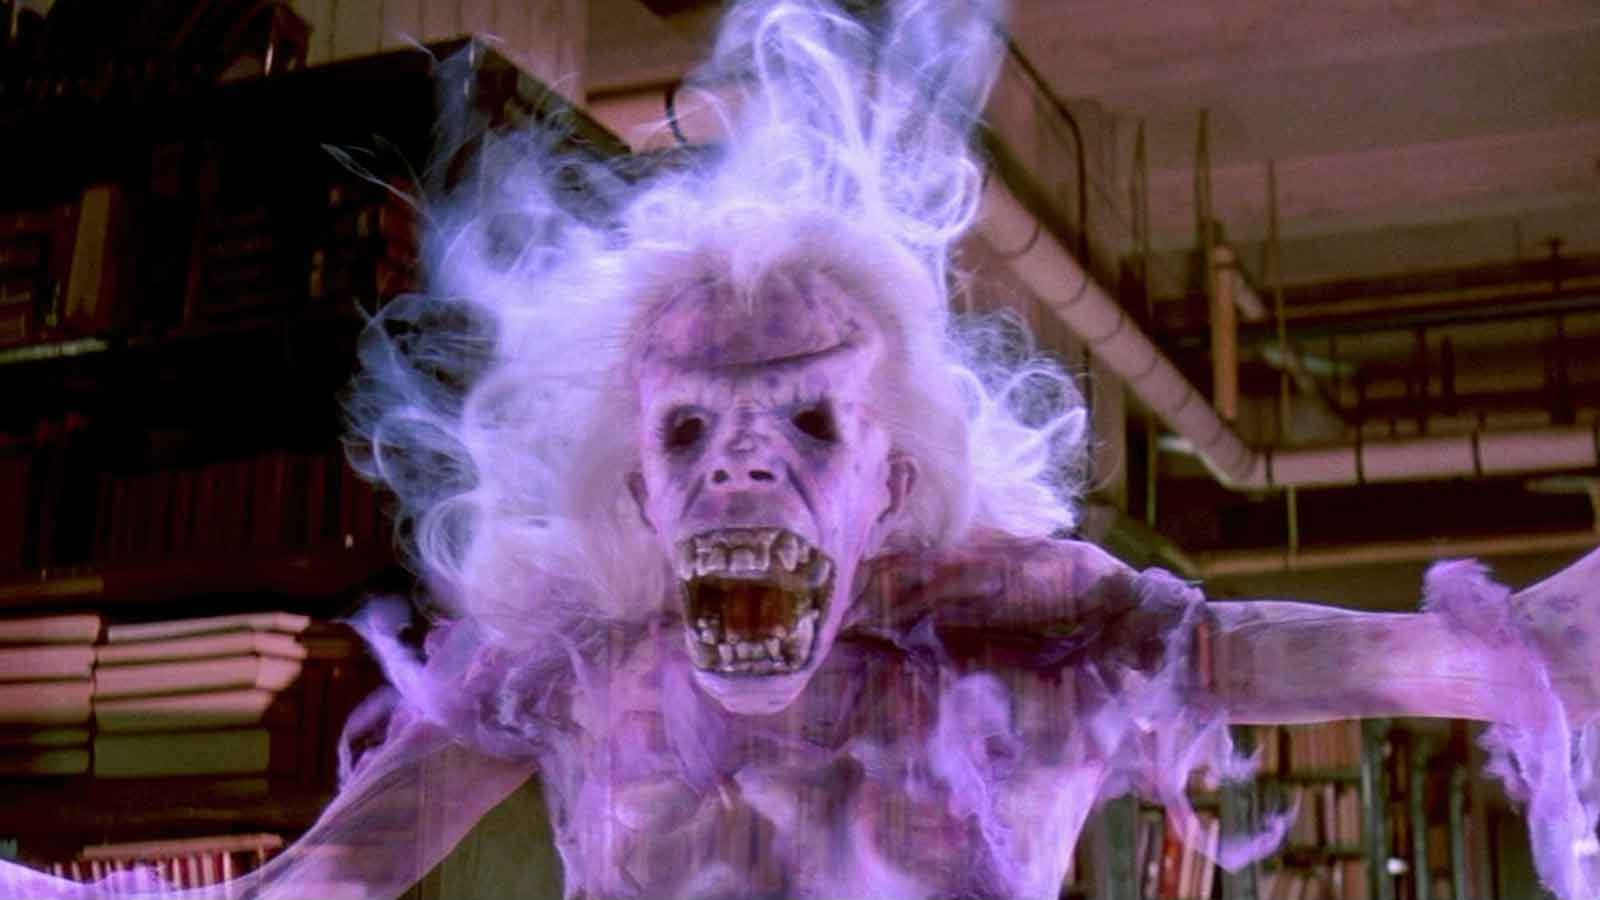 one of the ghouls from Ghostbusters flying around a library